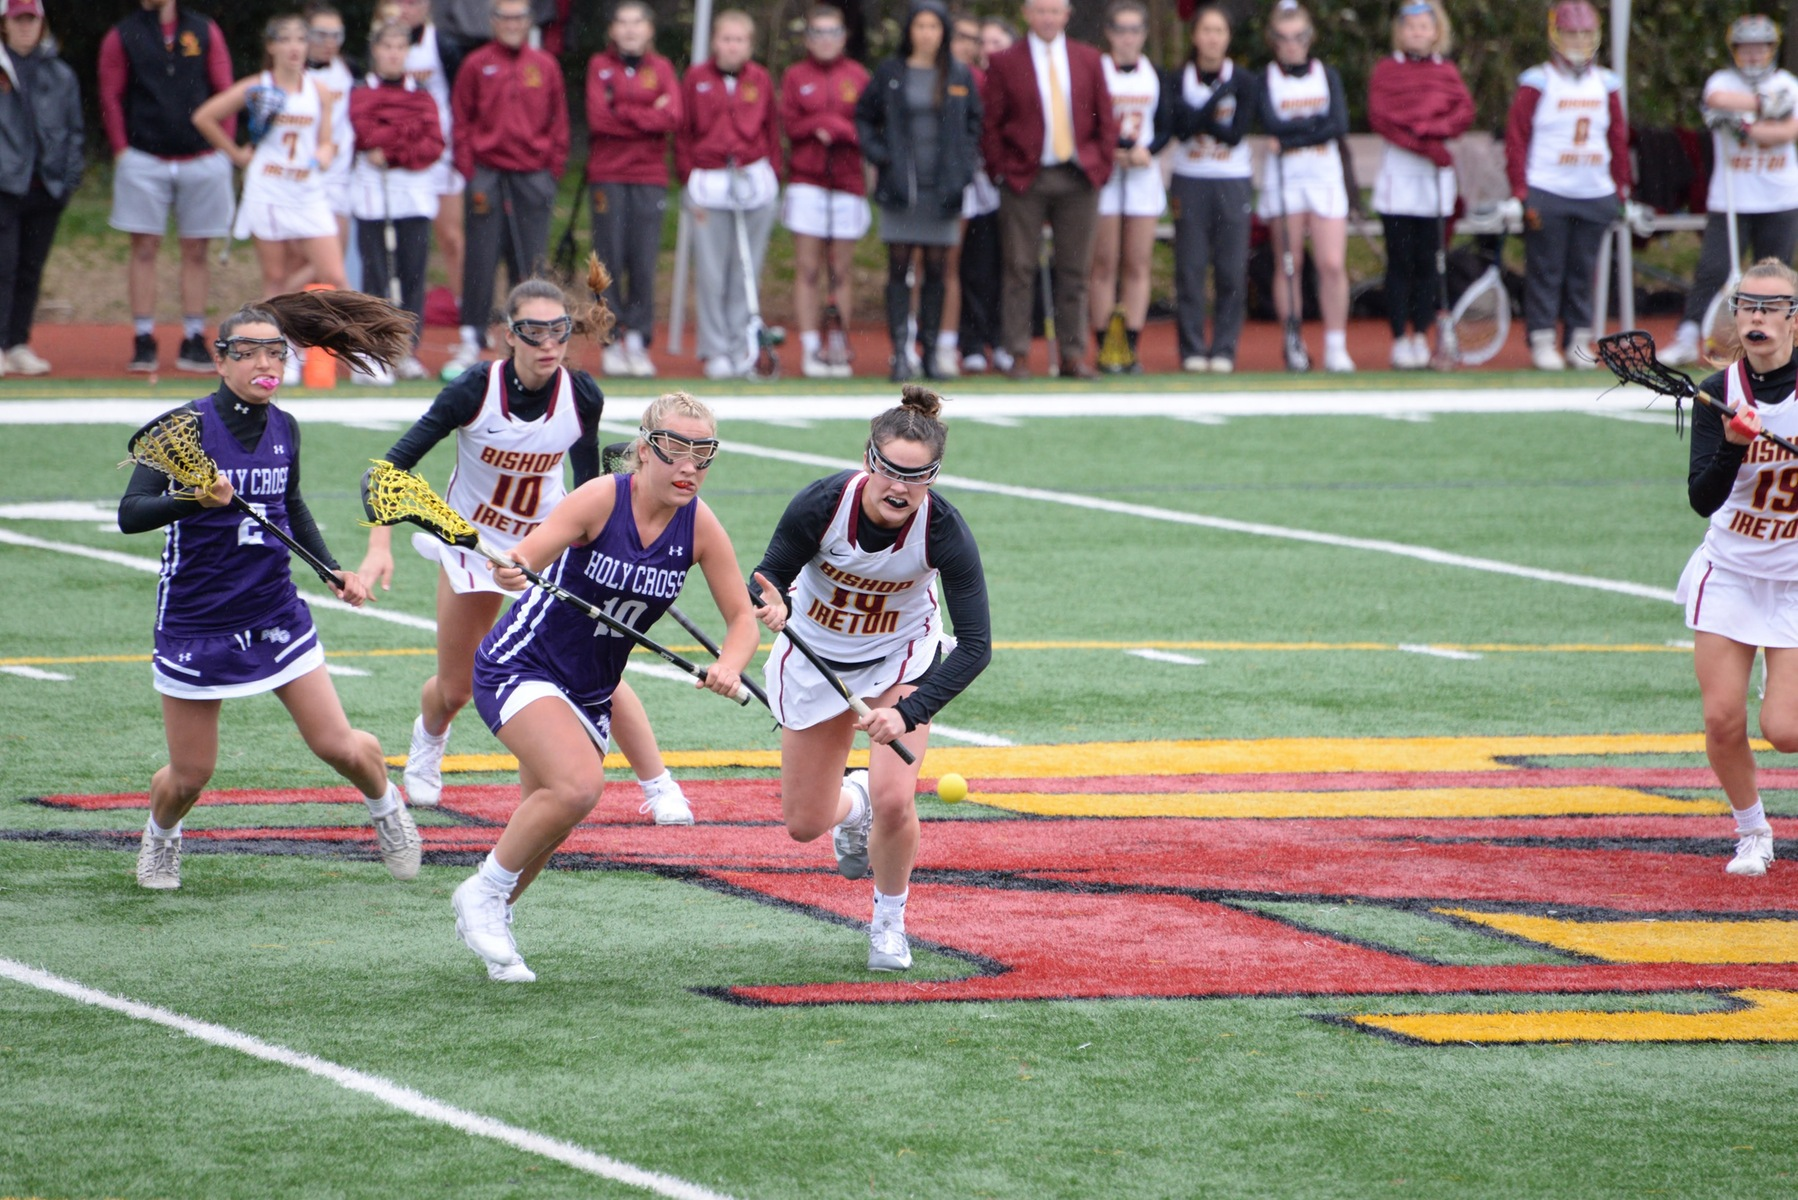 Both Bishop Ireton and Holy Cross advanced with Quarterfinal wins on Tuesday.